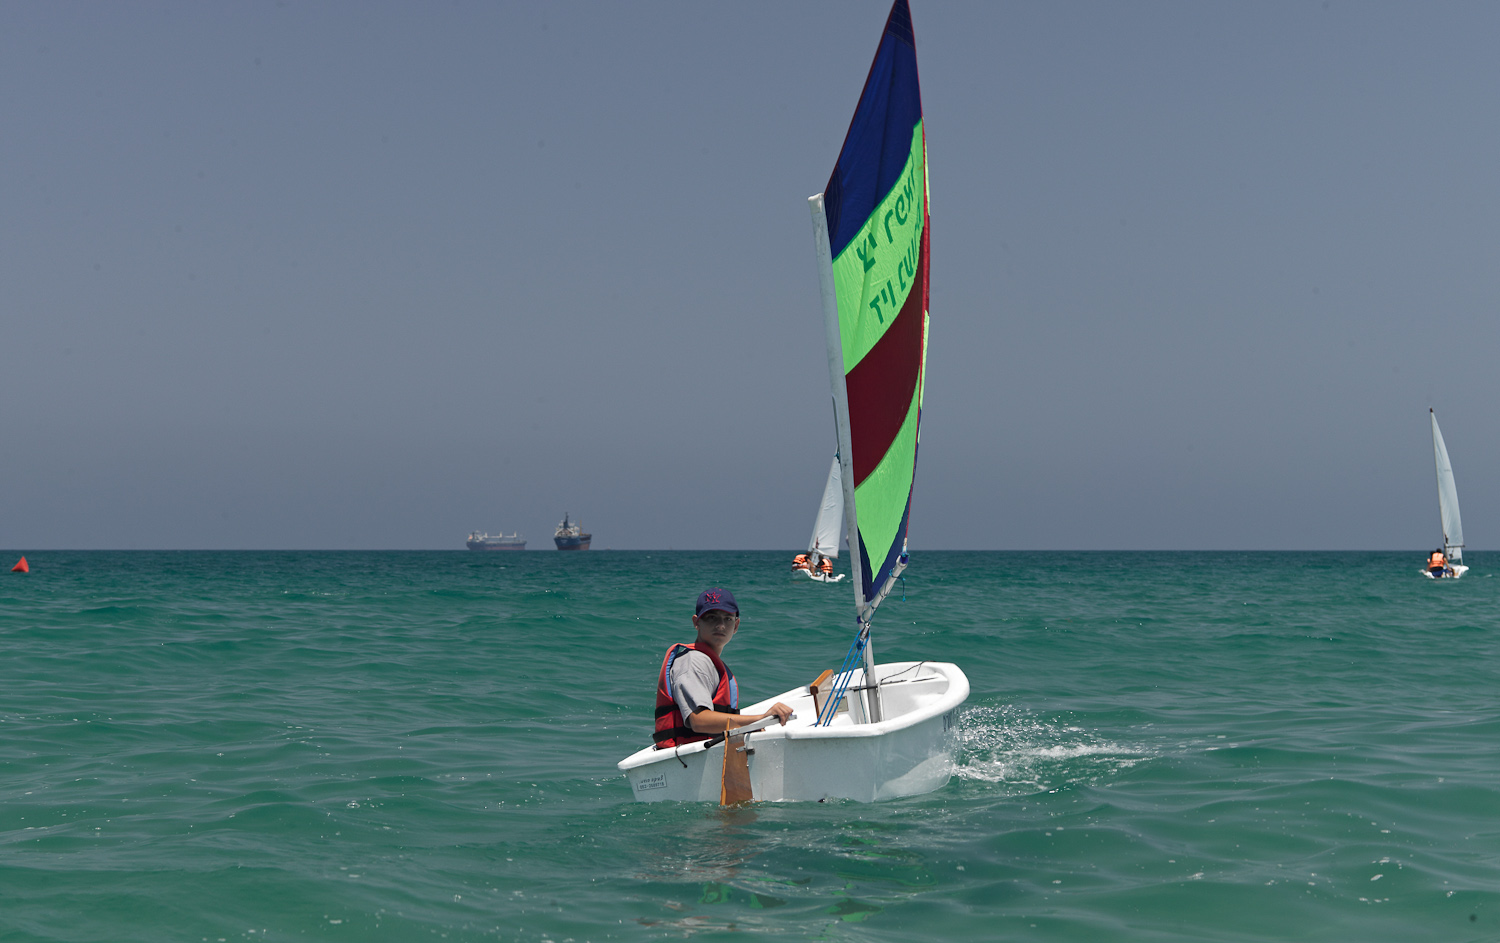 Sailboat - Ashdod, 2012